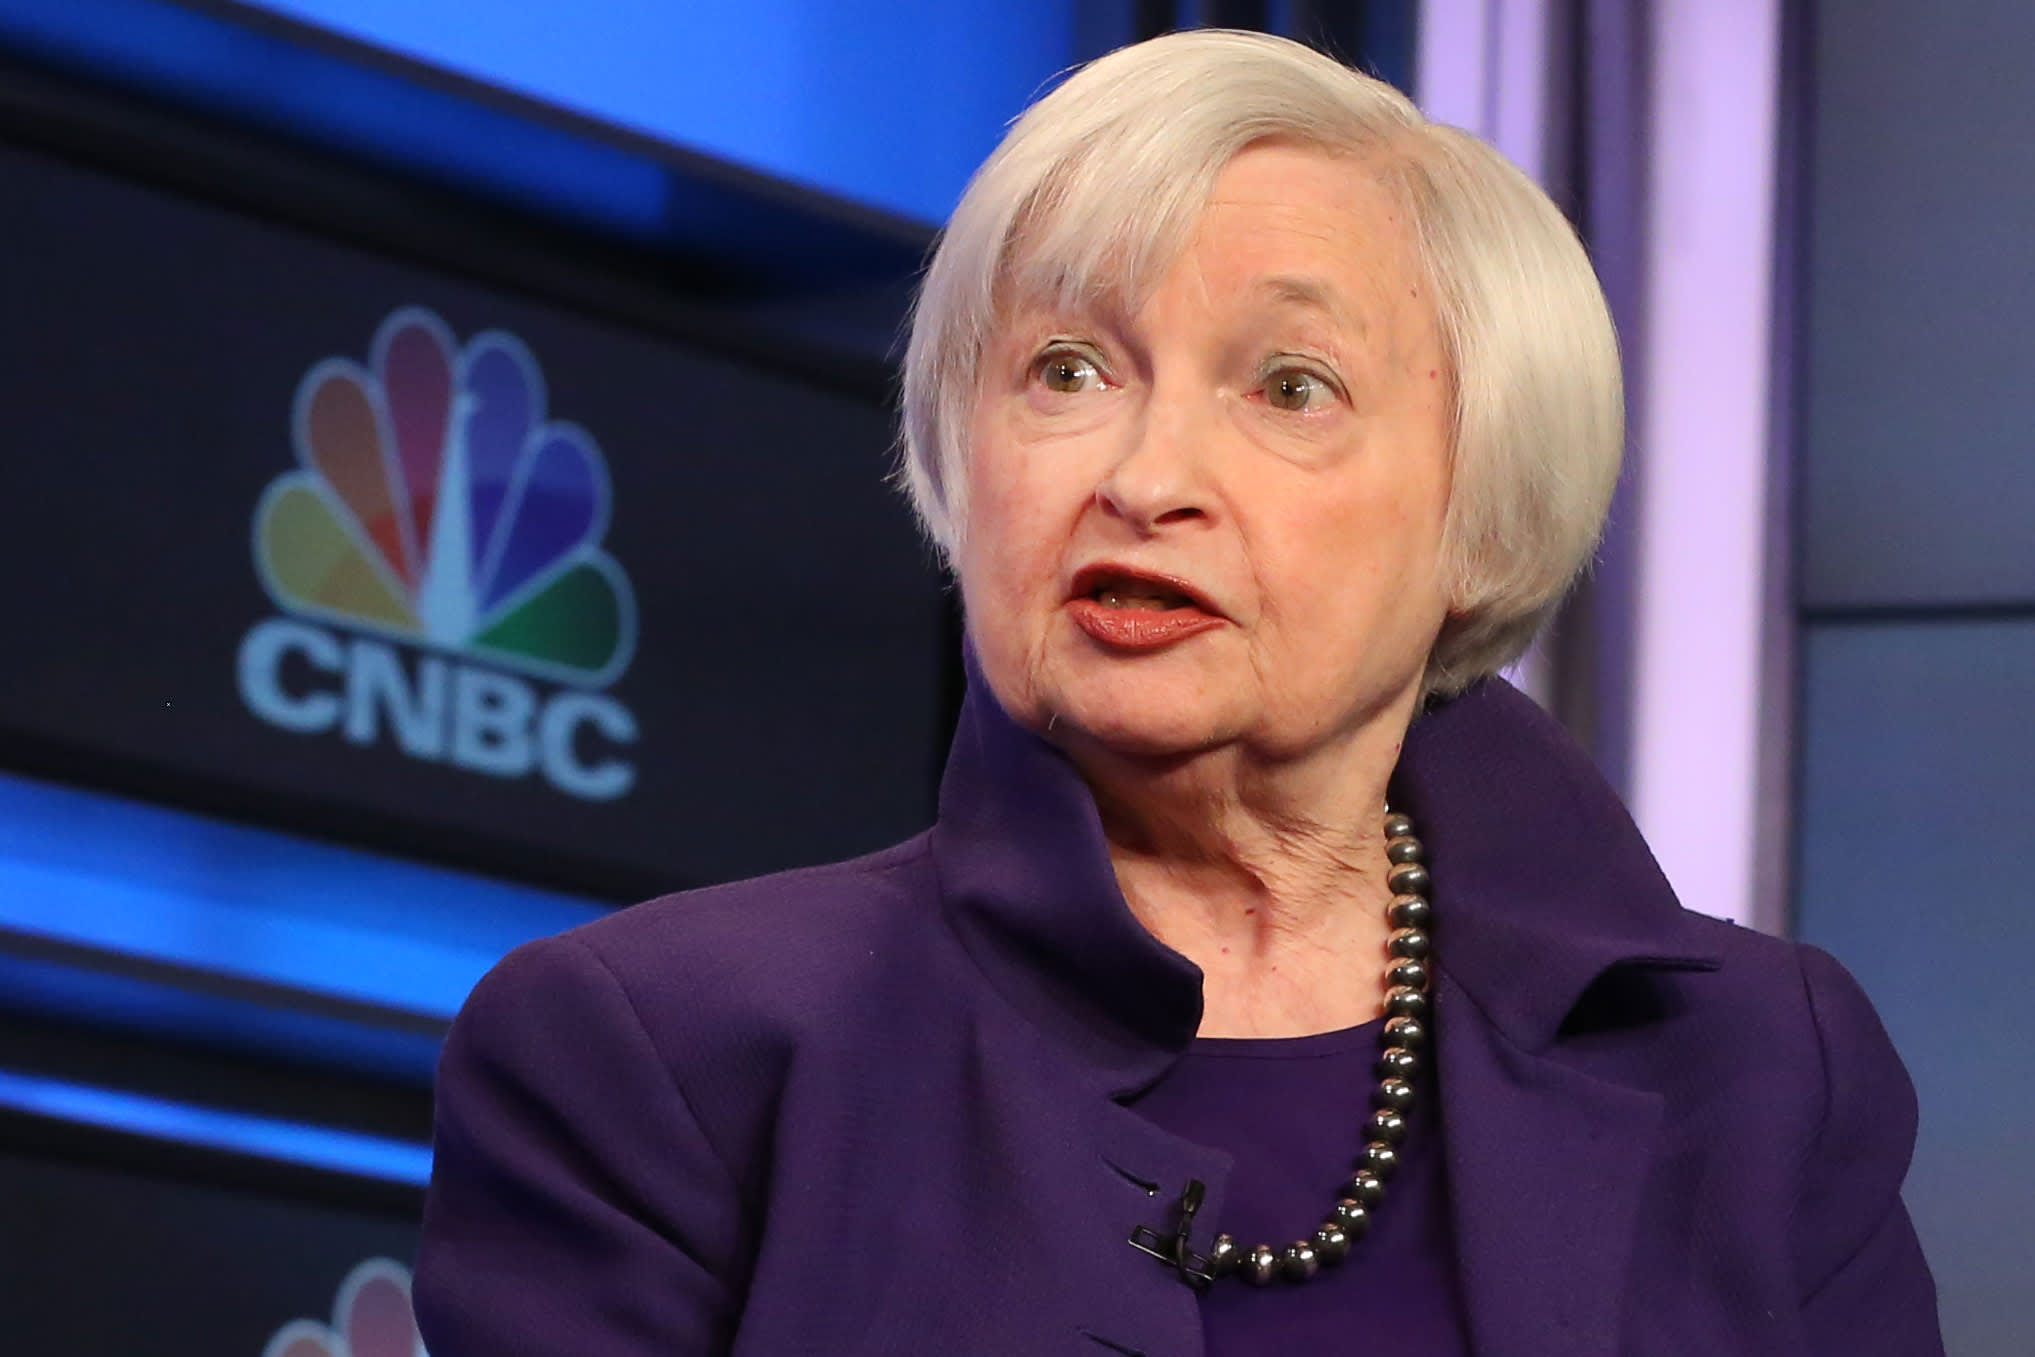 Janet Yellen says yield curve inversion may be false recession signal this time